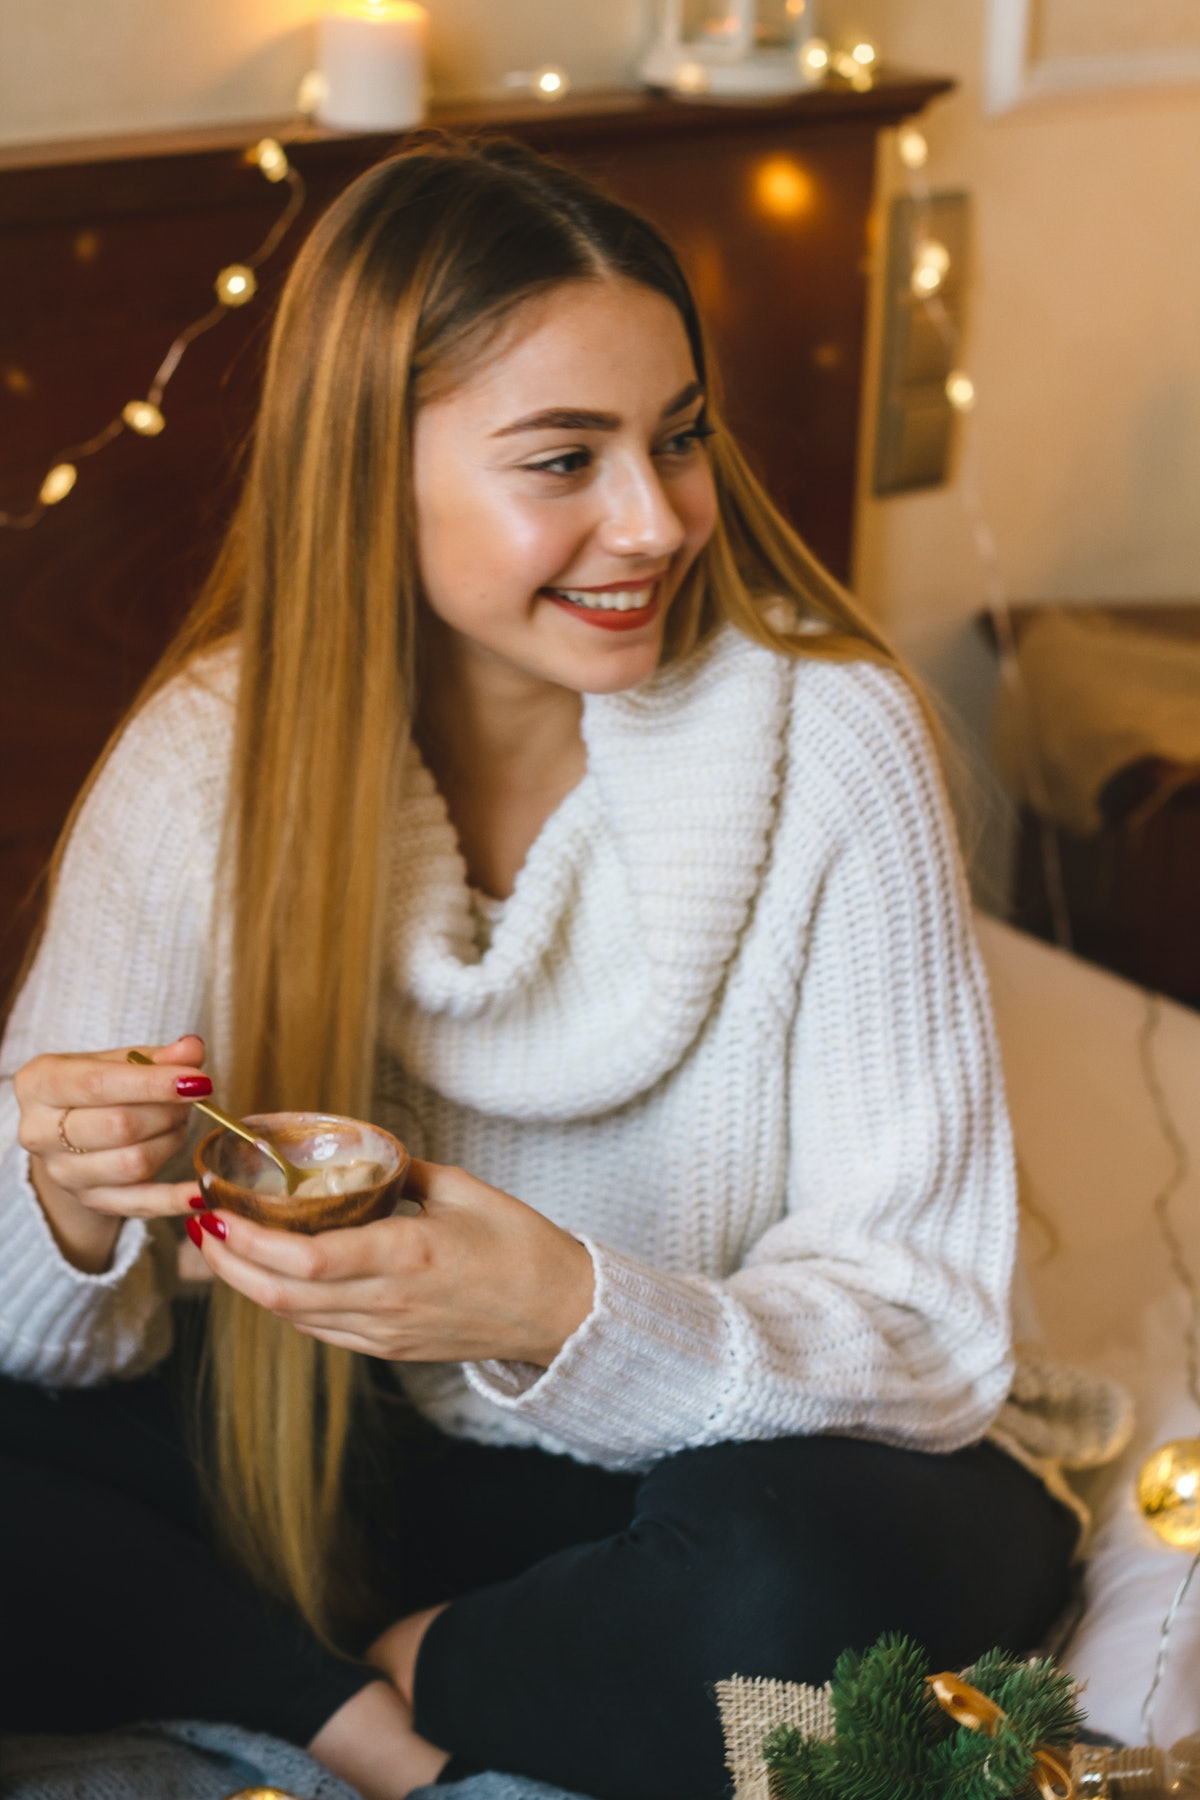 A blonde girl smiles and looks to the side while sitting on a couch and eating ice cream.